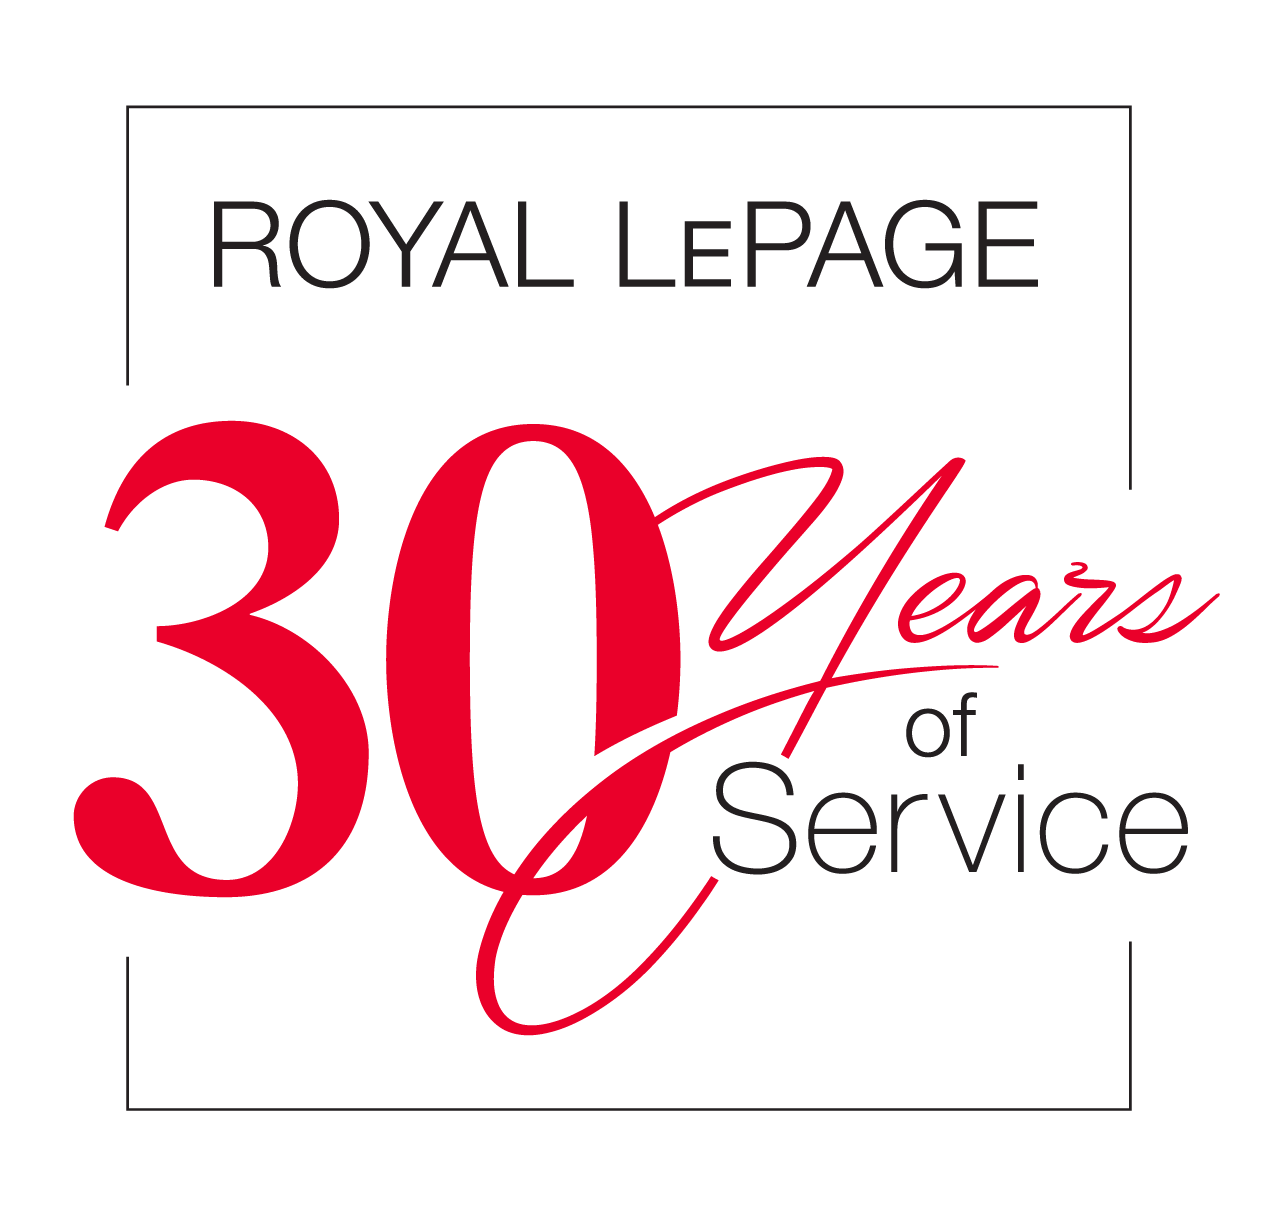 Years of Service - 30 Years